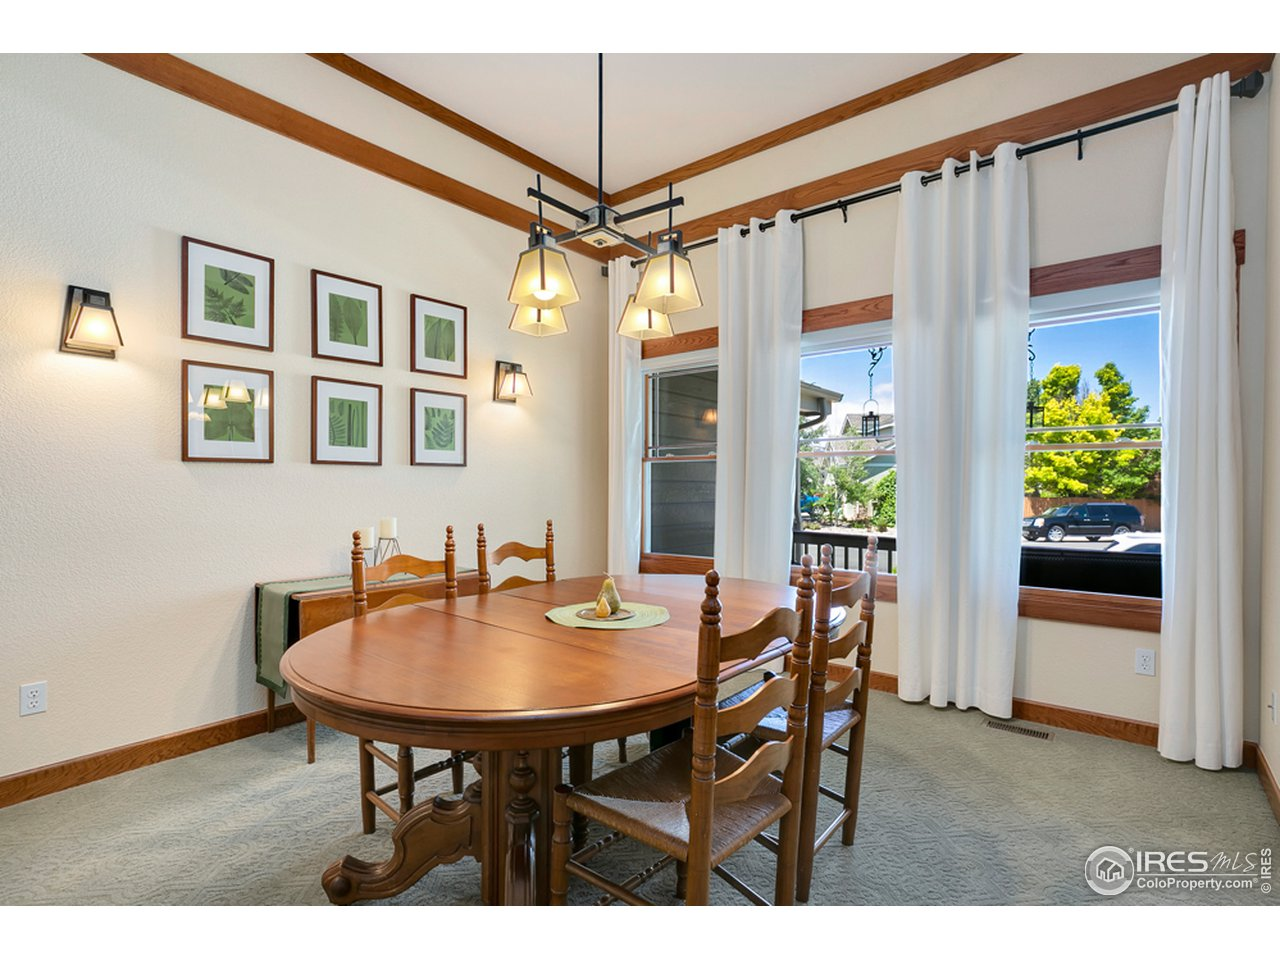 Formal dining with crown molding detail and tray ceilings